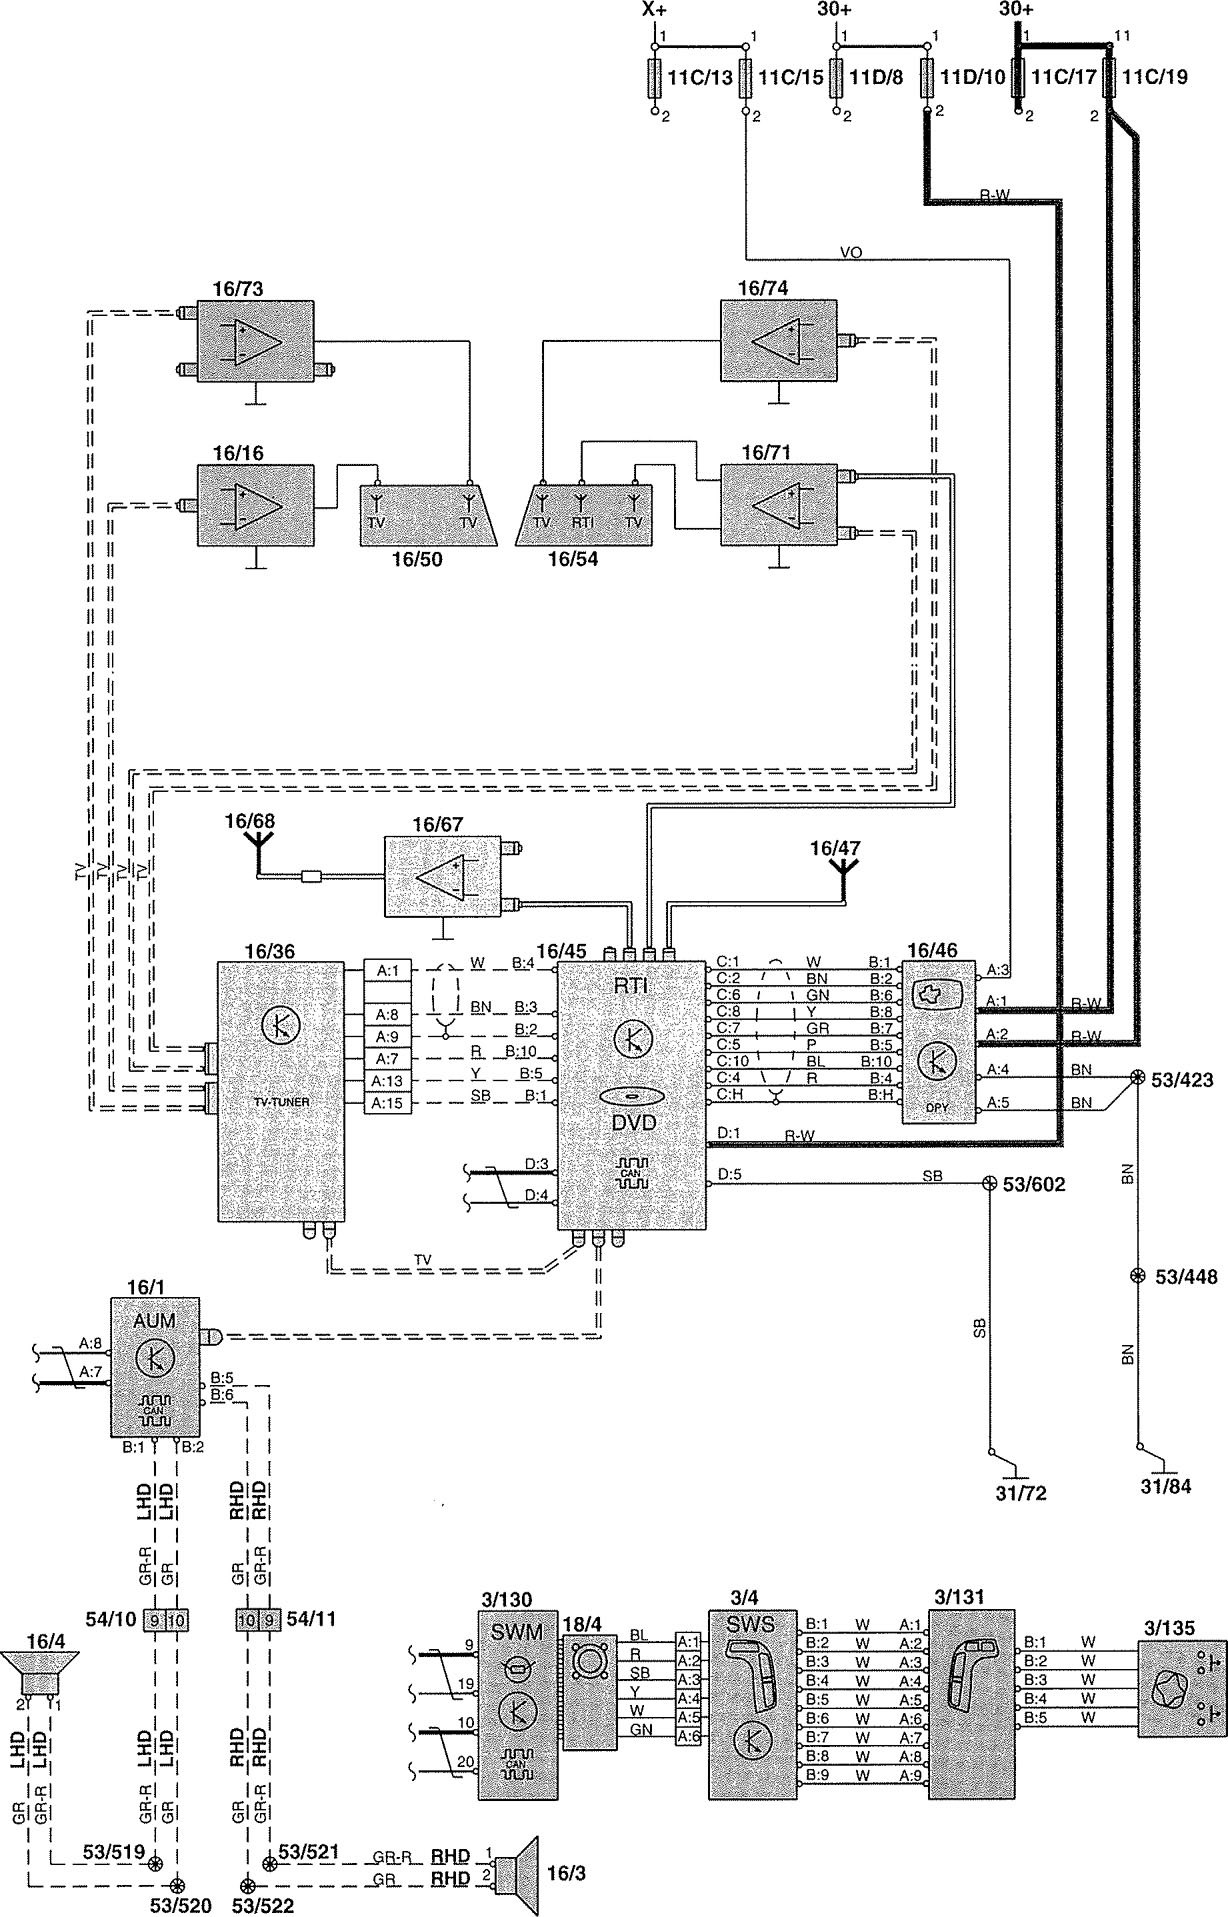 volvo v70 wiring diagram 2000 vauxhall astra convertible 2002 diagrams navigation system